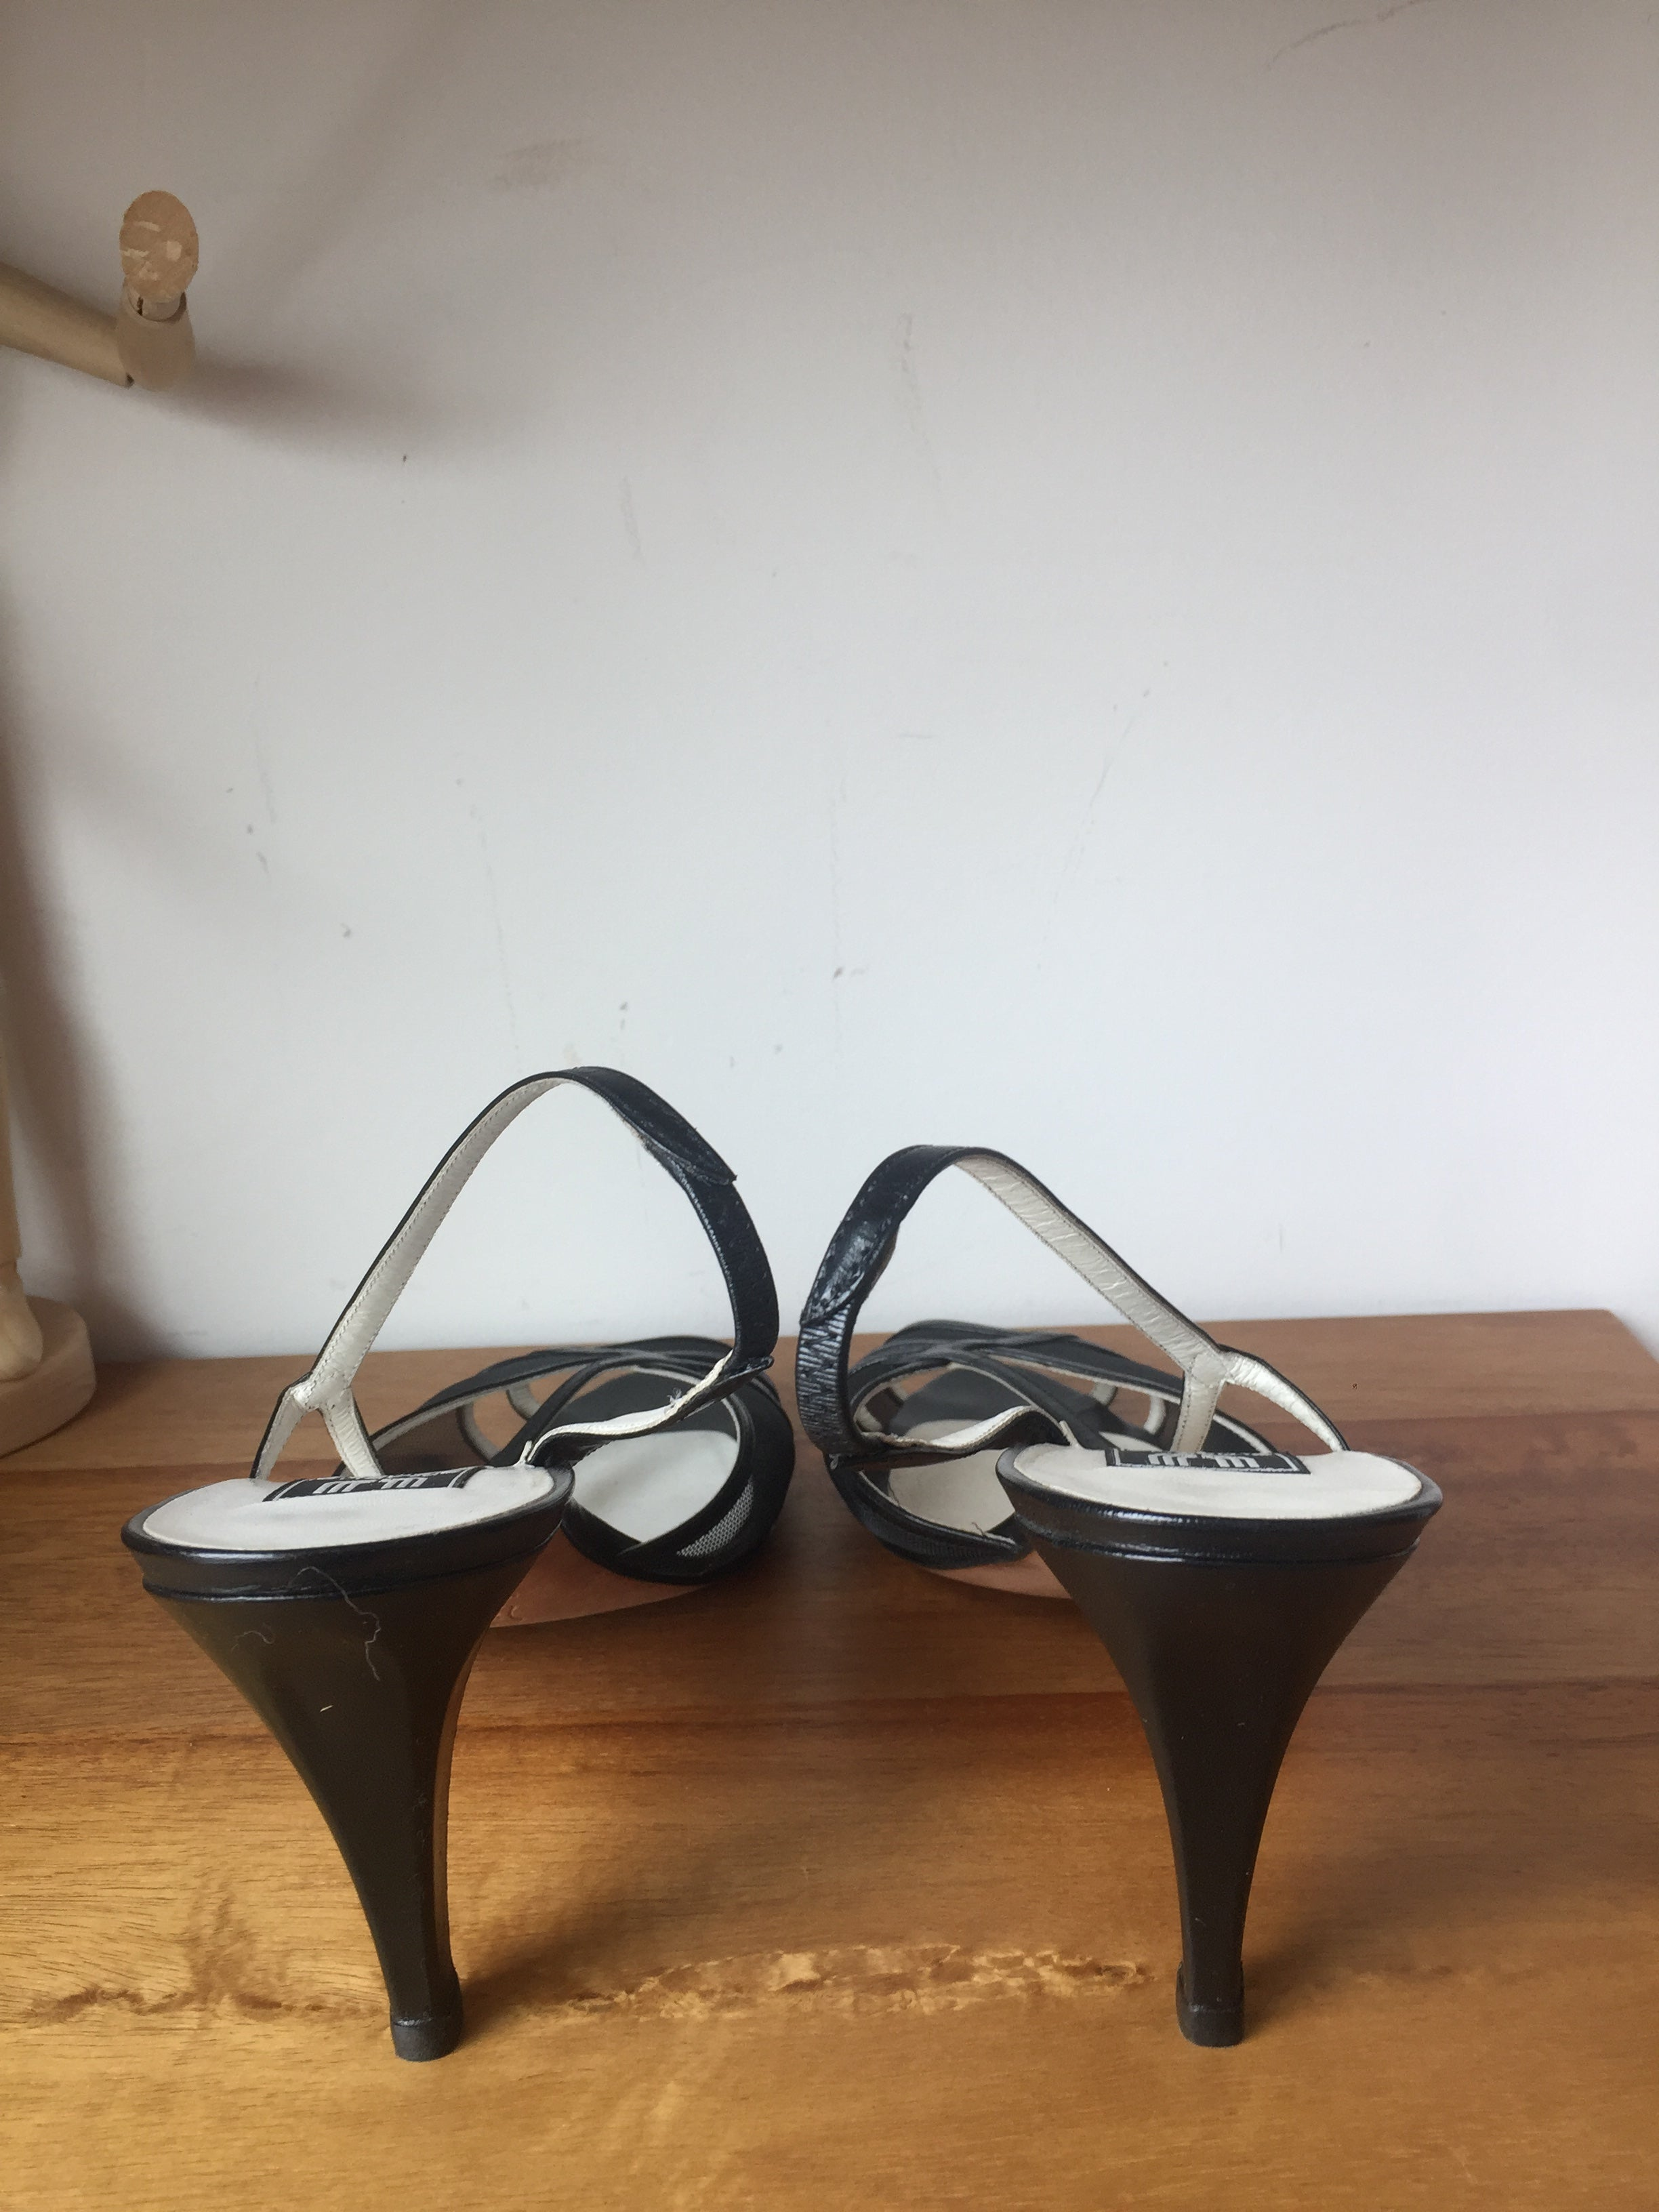 Emanuel Ungaro Paris Vintage Black Sexy Mesh String Leather High Heels Sandals Made in Italy 39